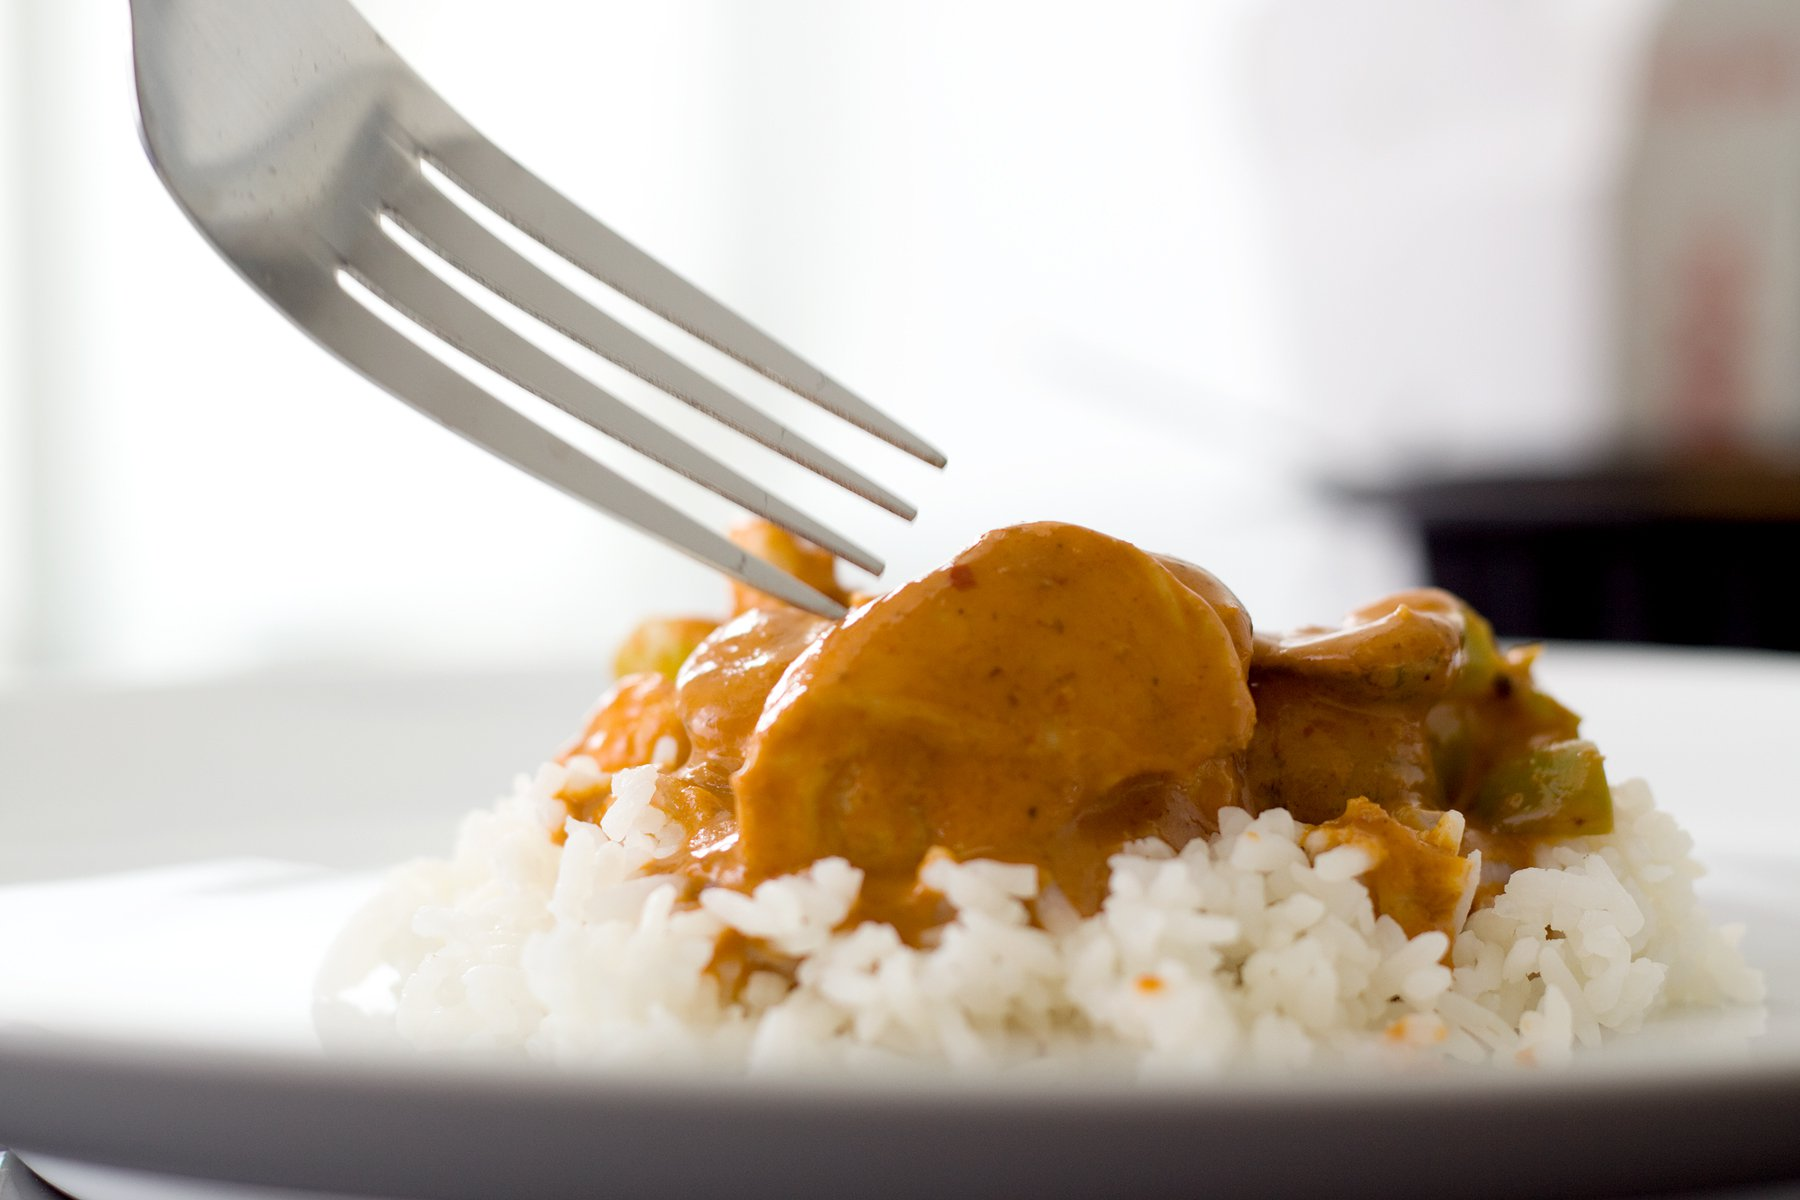 Man jailed for flicking curry and rice at woman, 80